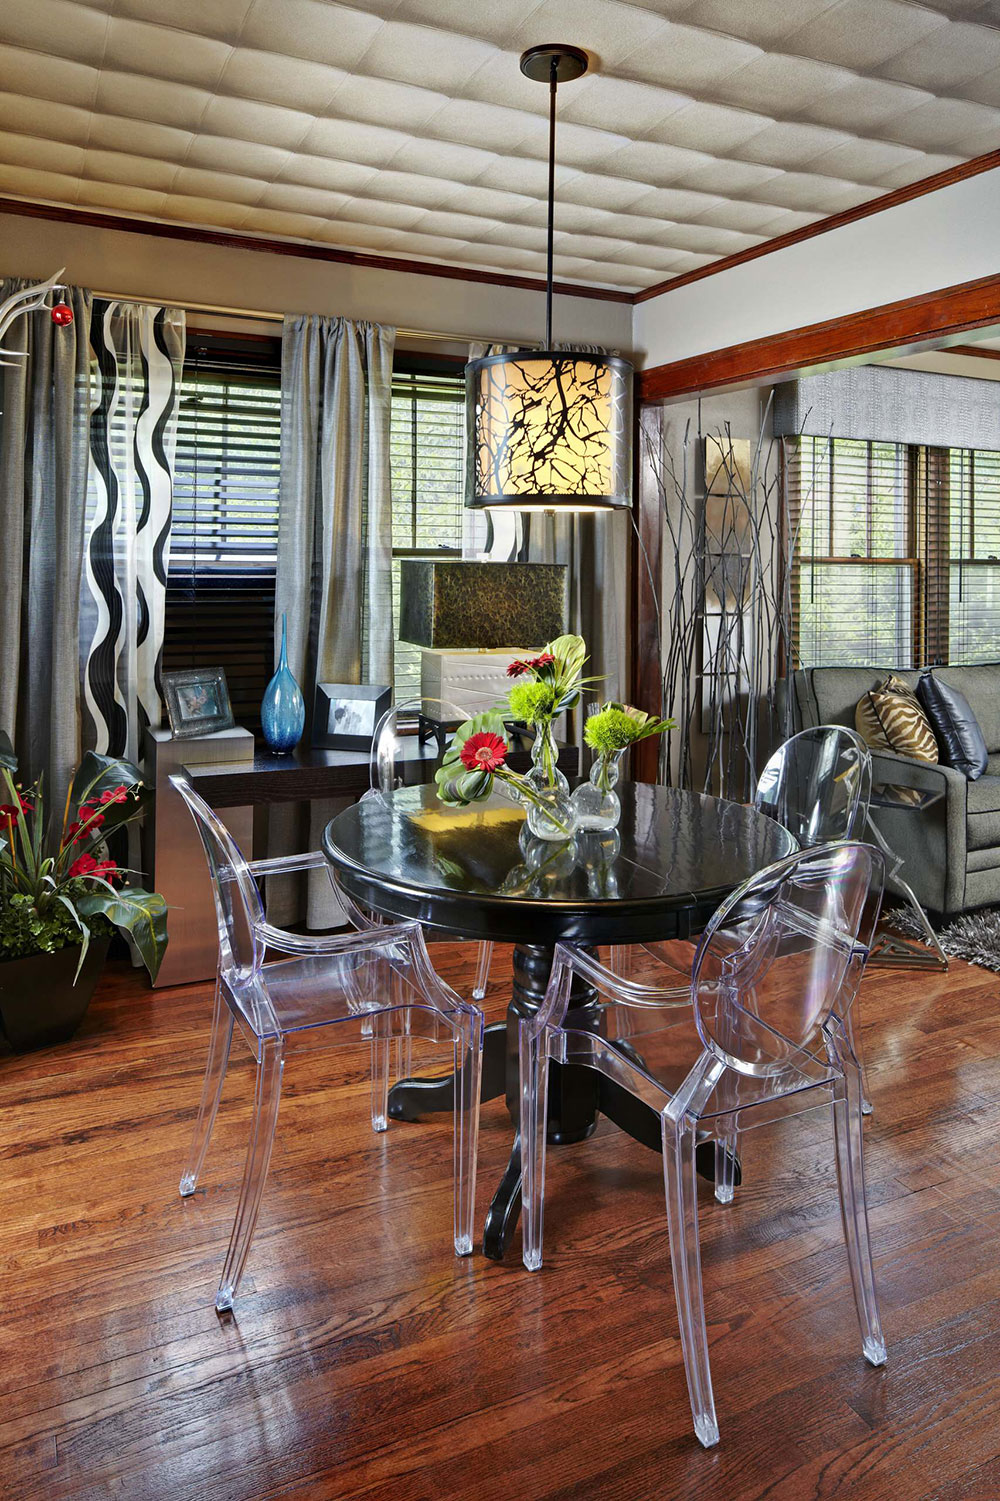 Tips for decorating small dining rooms13 tips for decorating small dining rooms